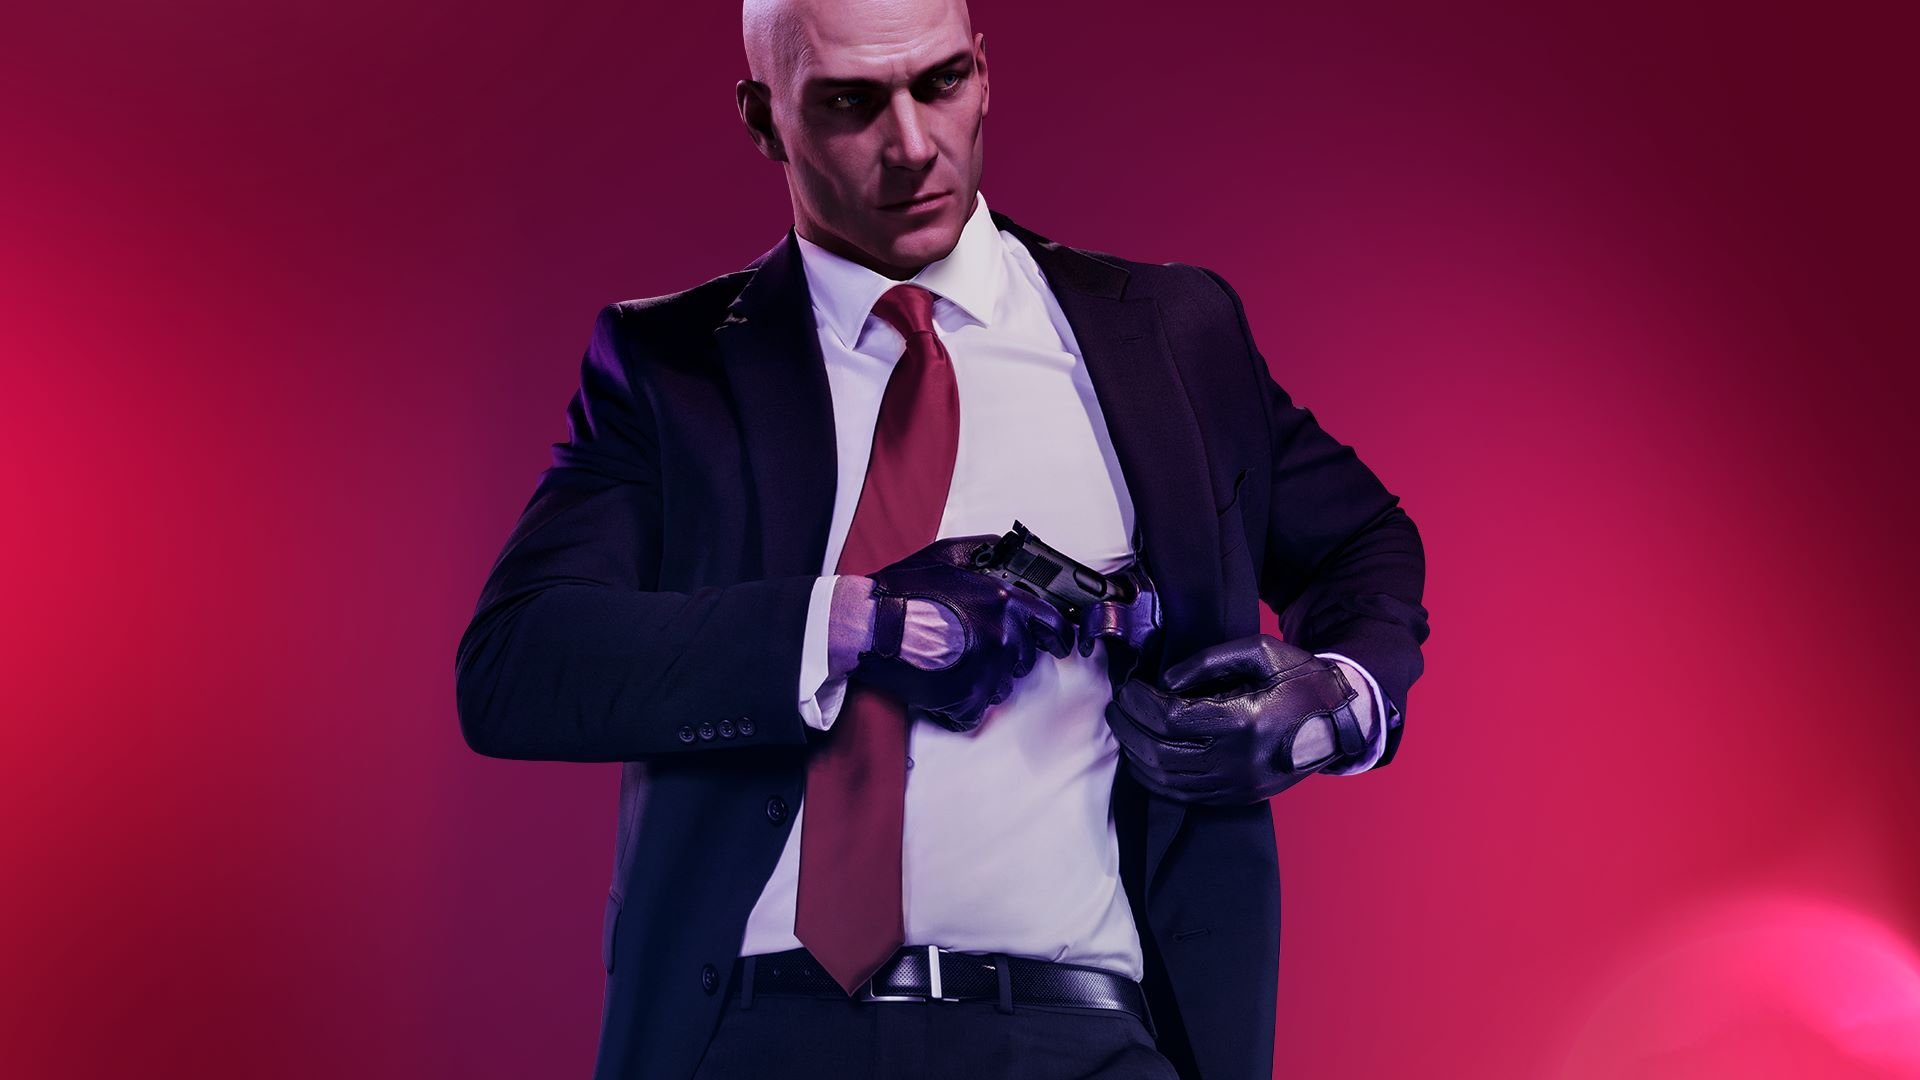 Hitman 2's Elusive Target #4 The Politician arrives in March